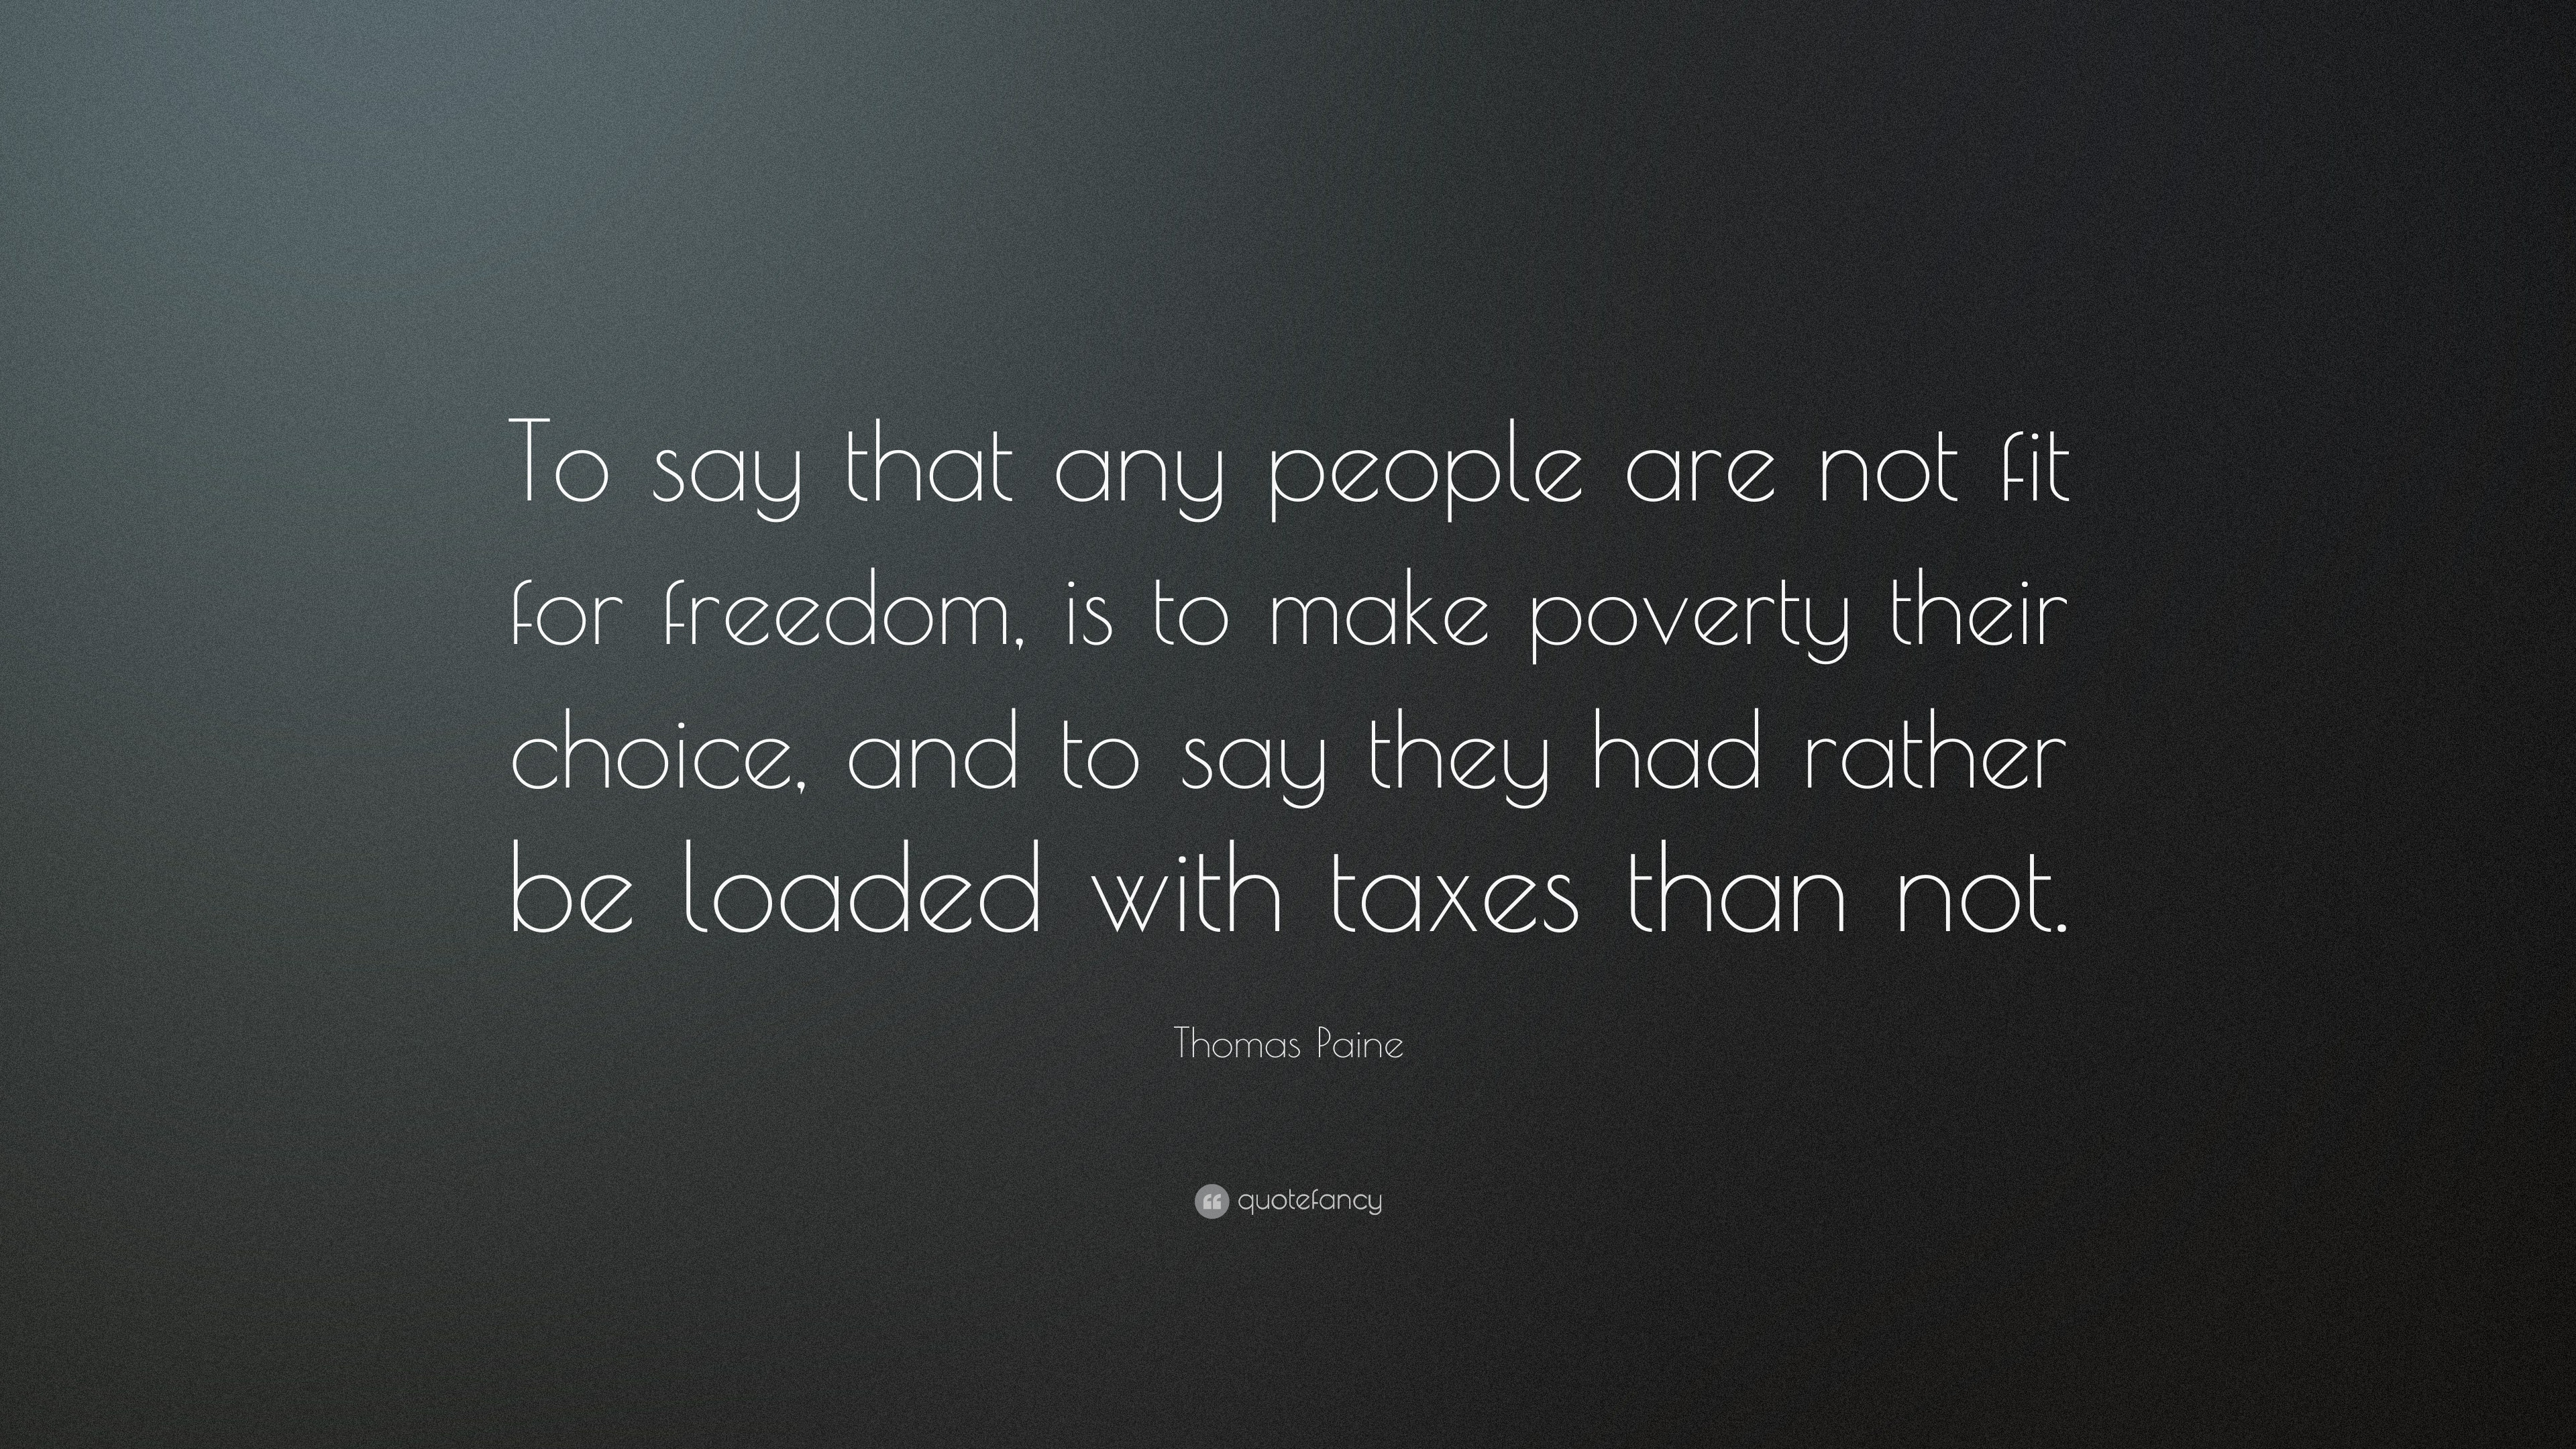 Quotes About Taxes Quotes About Taxes Classy Famous Tax Quotes For This Tax Day